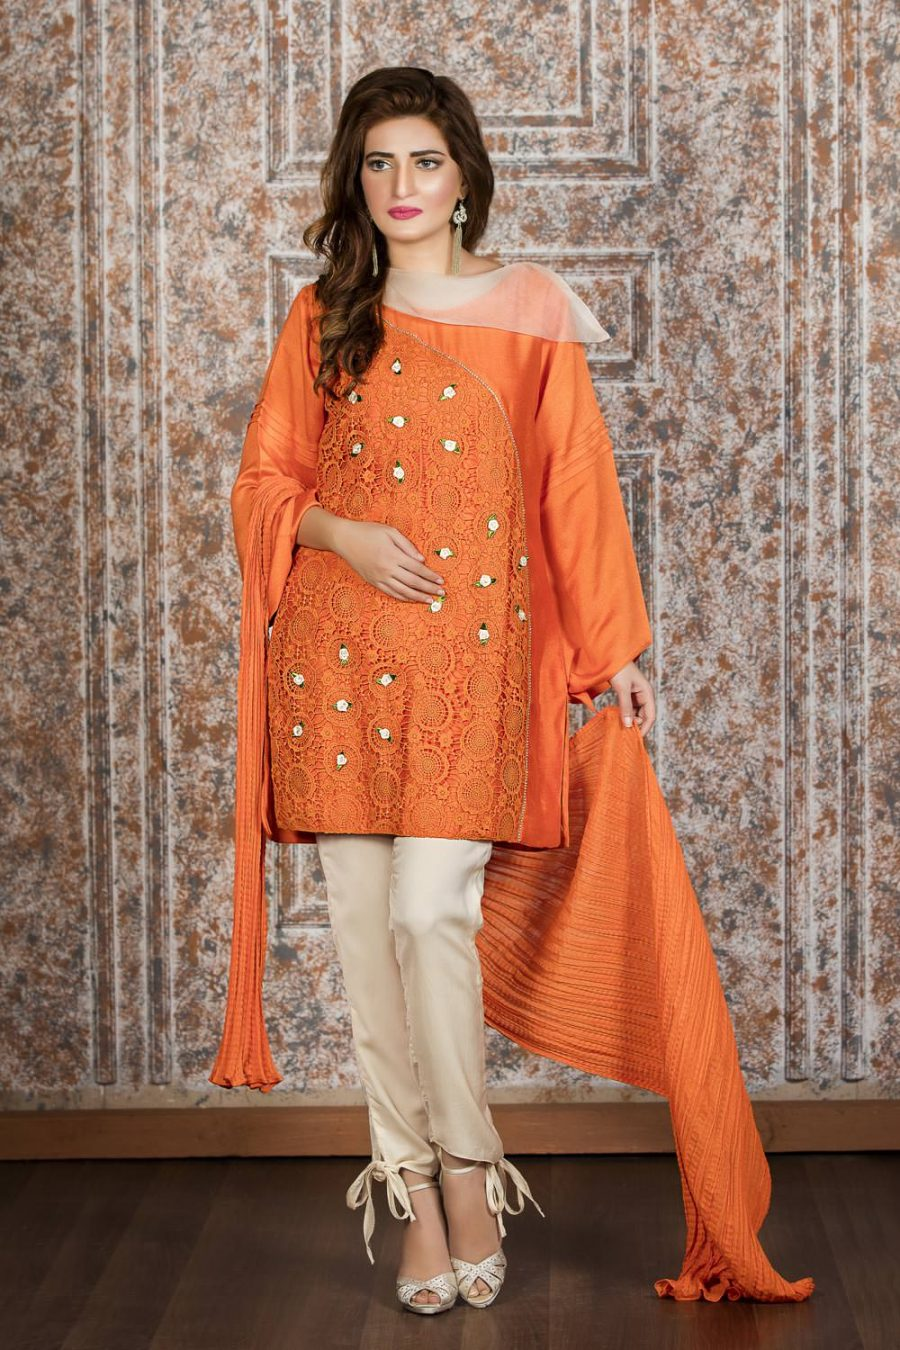 e1a86f1952f 15 Pakistani Casual Dresses For Ladies - Dresses - Crayon